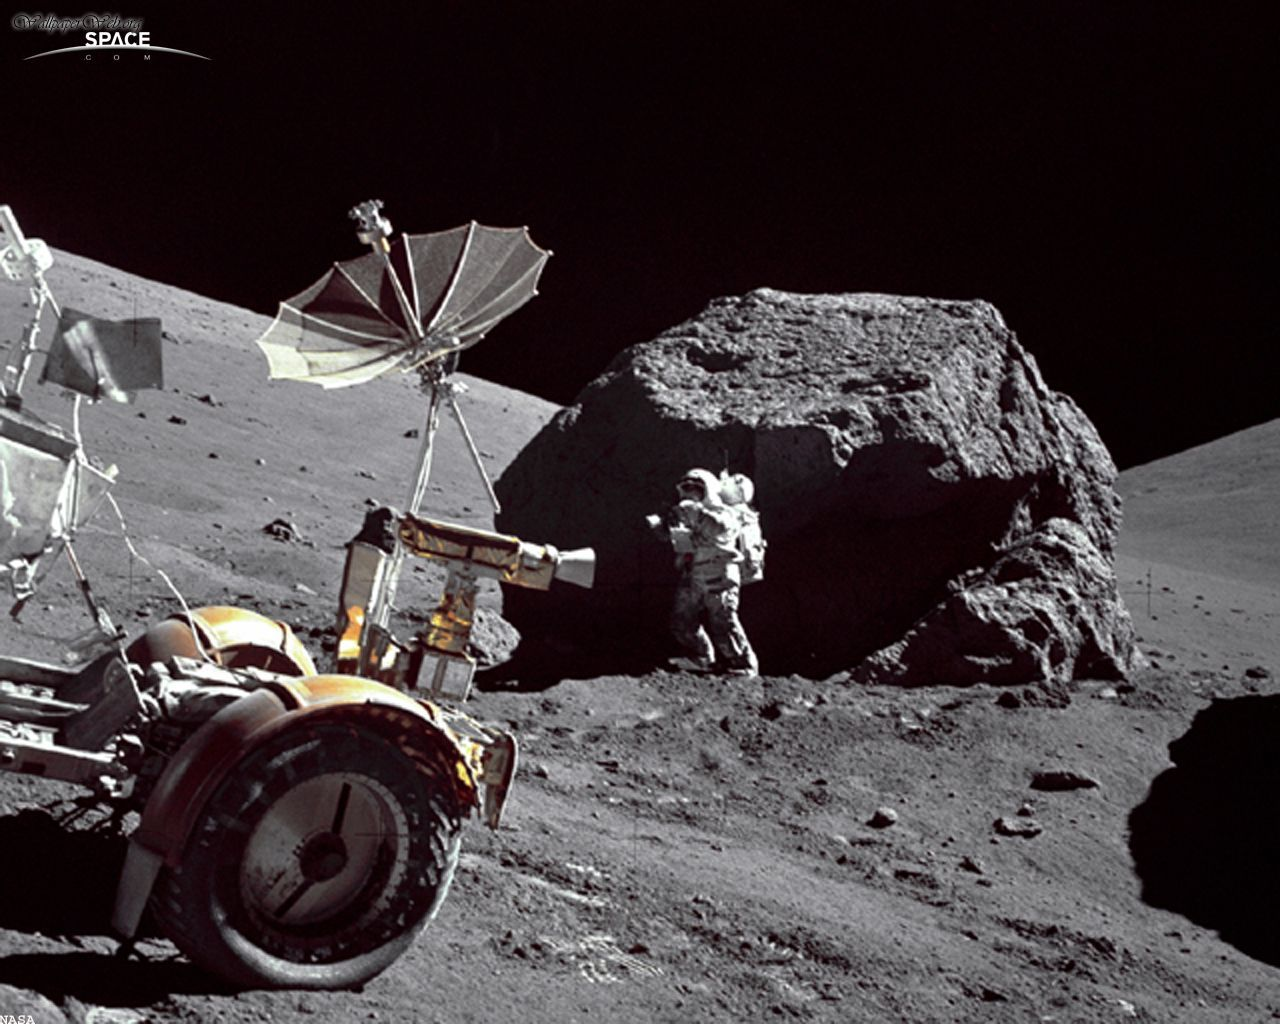 Apollo Moon Wallpaper page 5   Pics about space 1280x1024